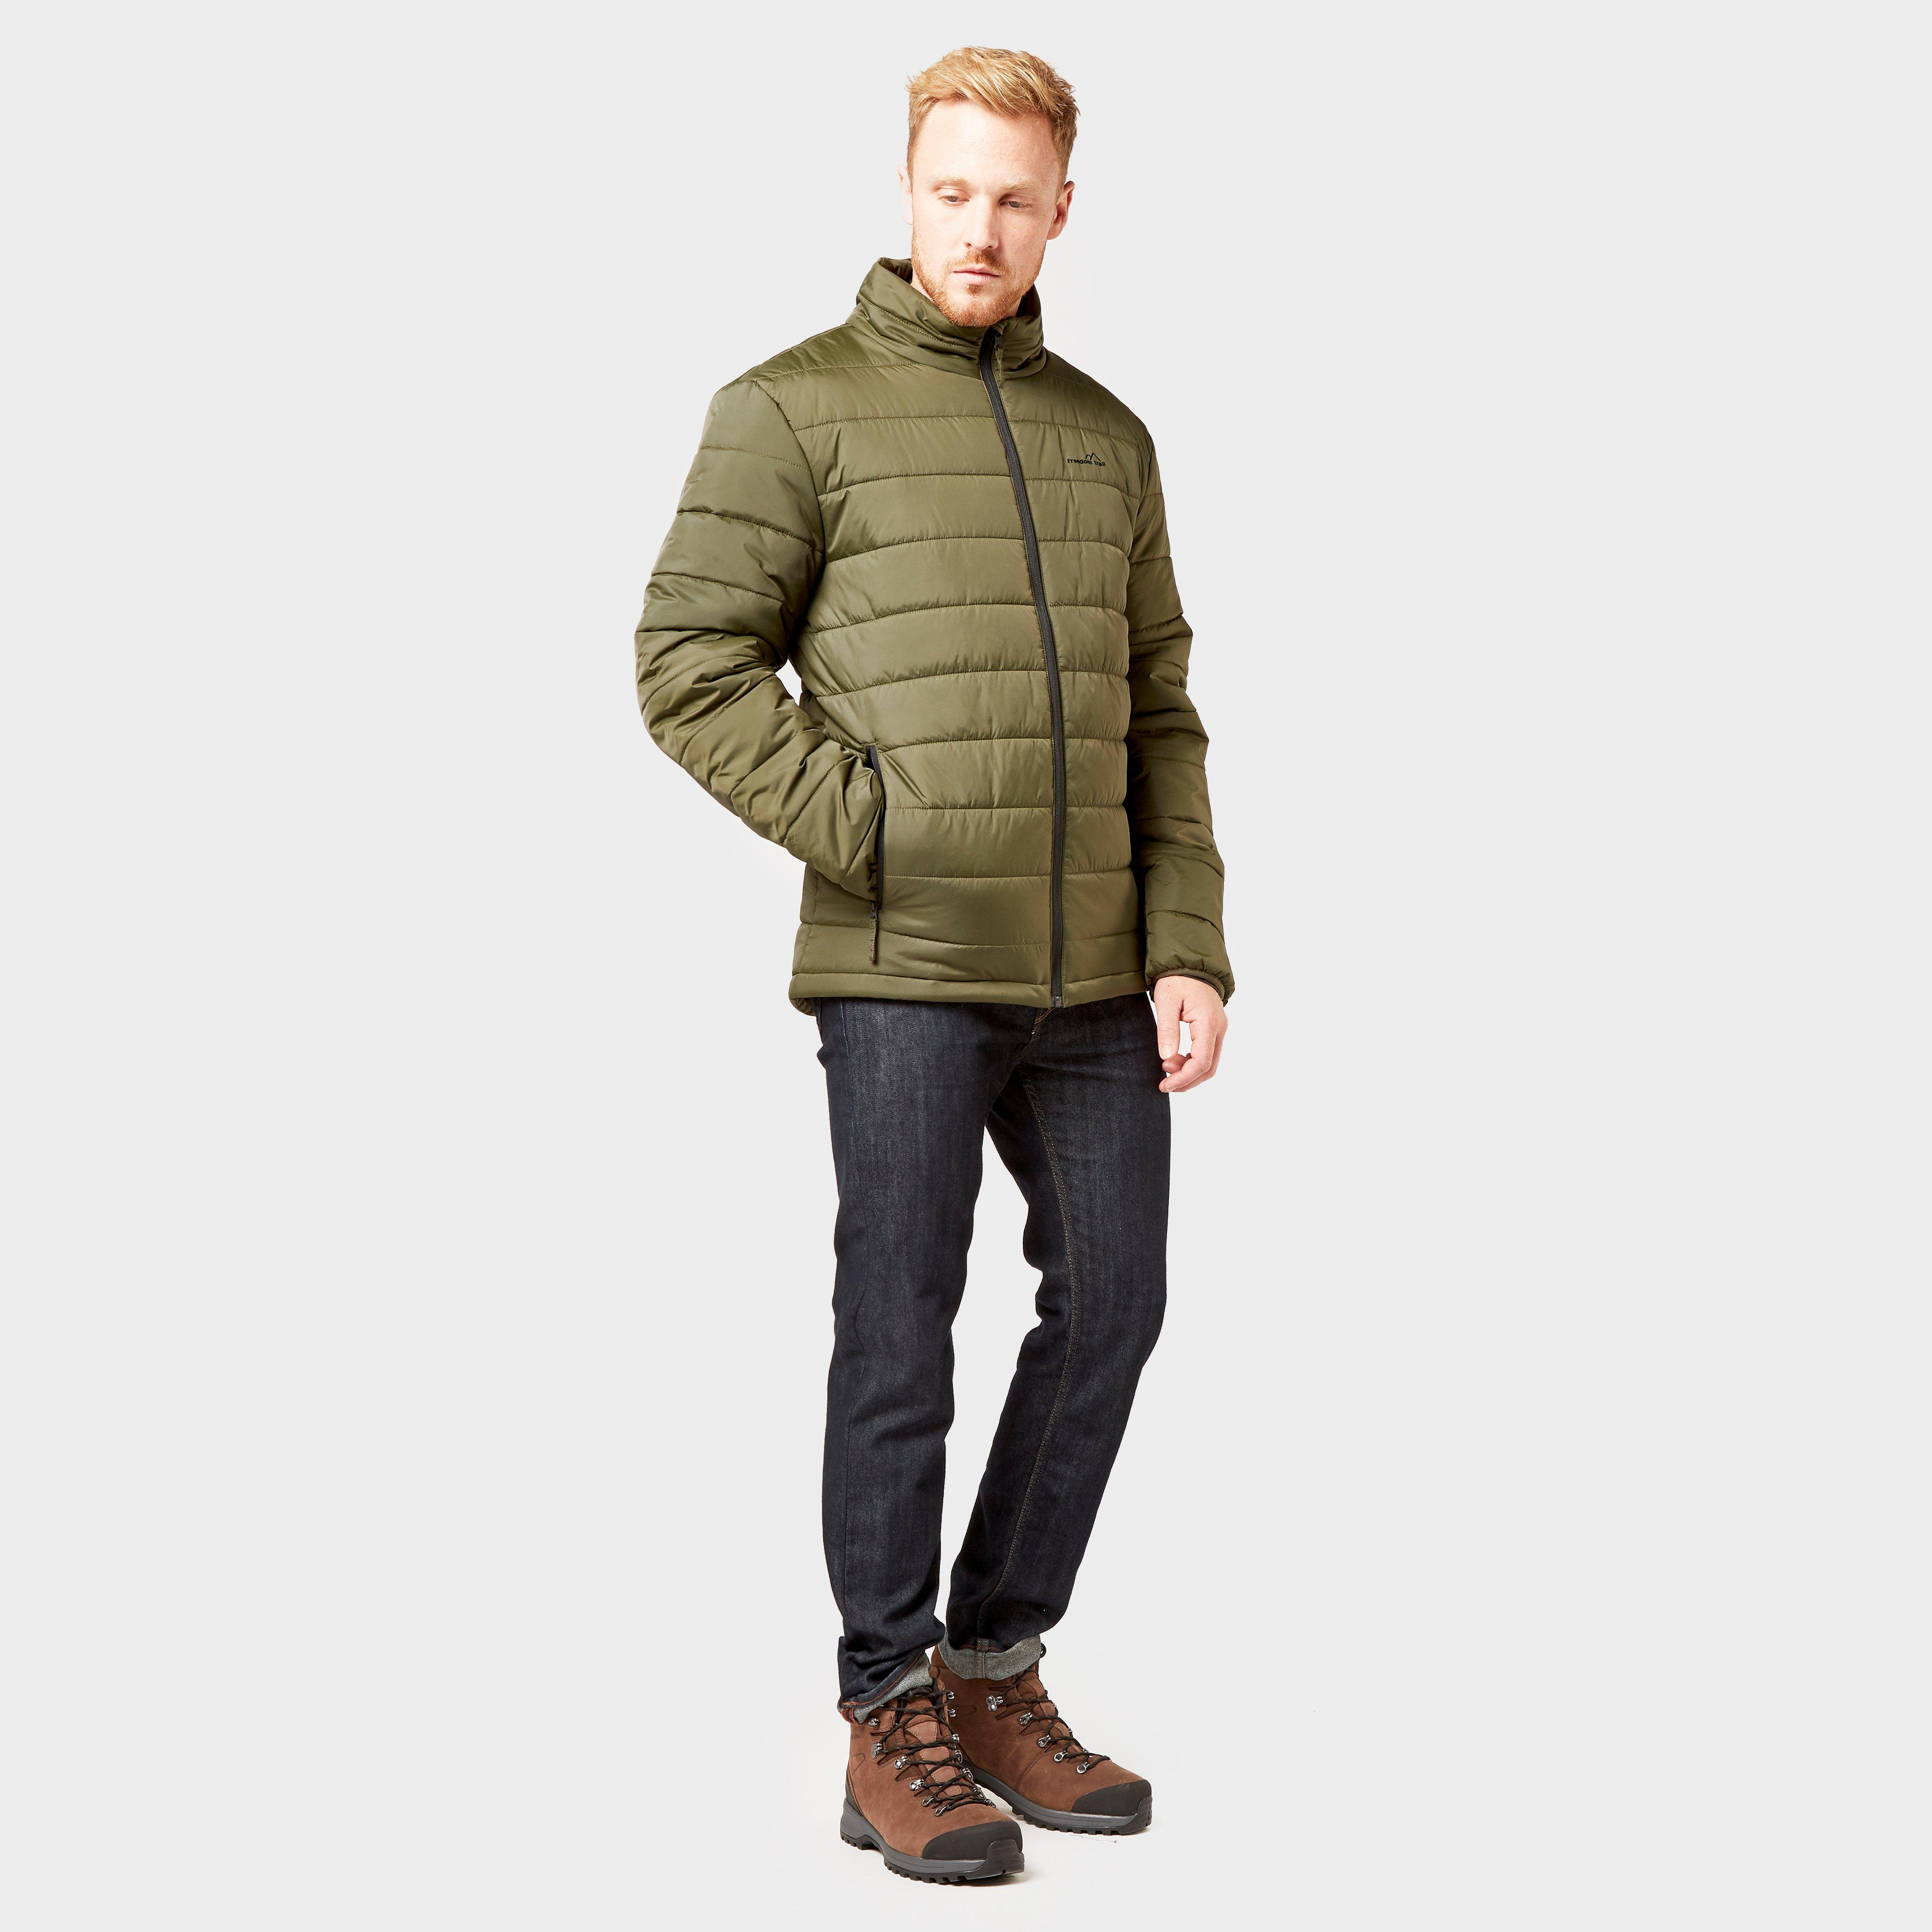 New Freedom Trail Men's Blisco Insulated Jacket